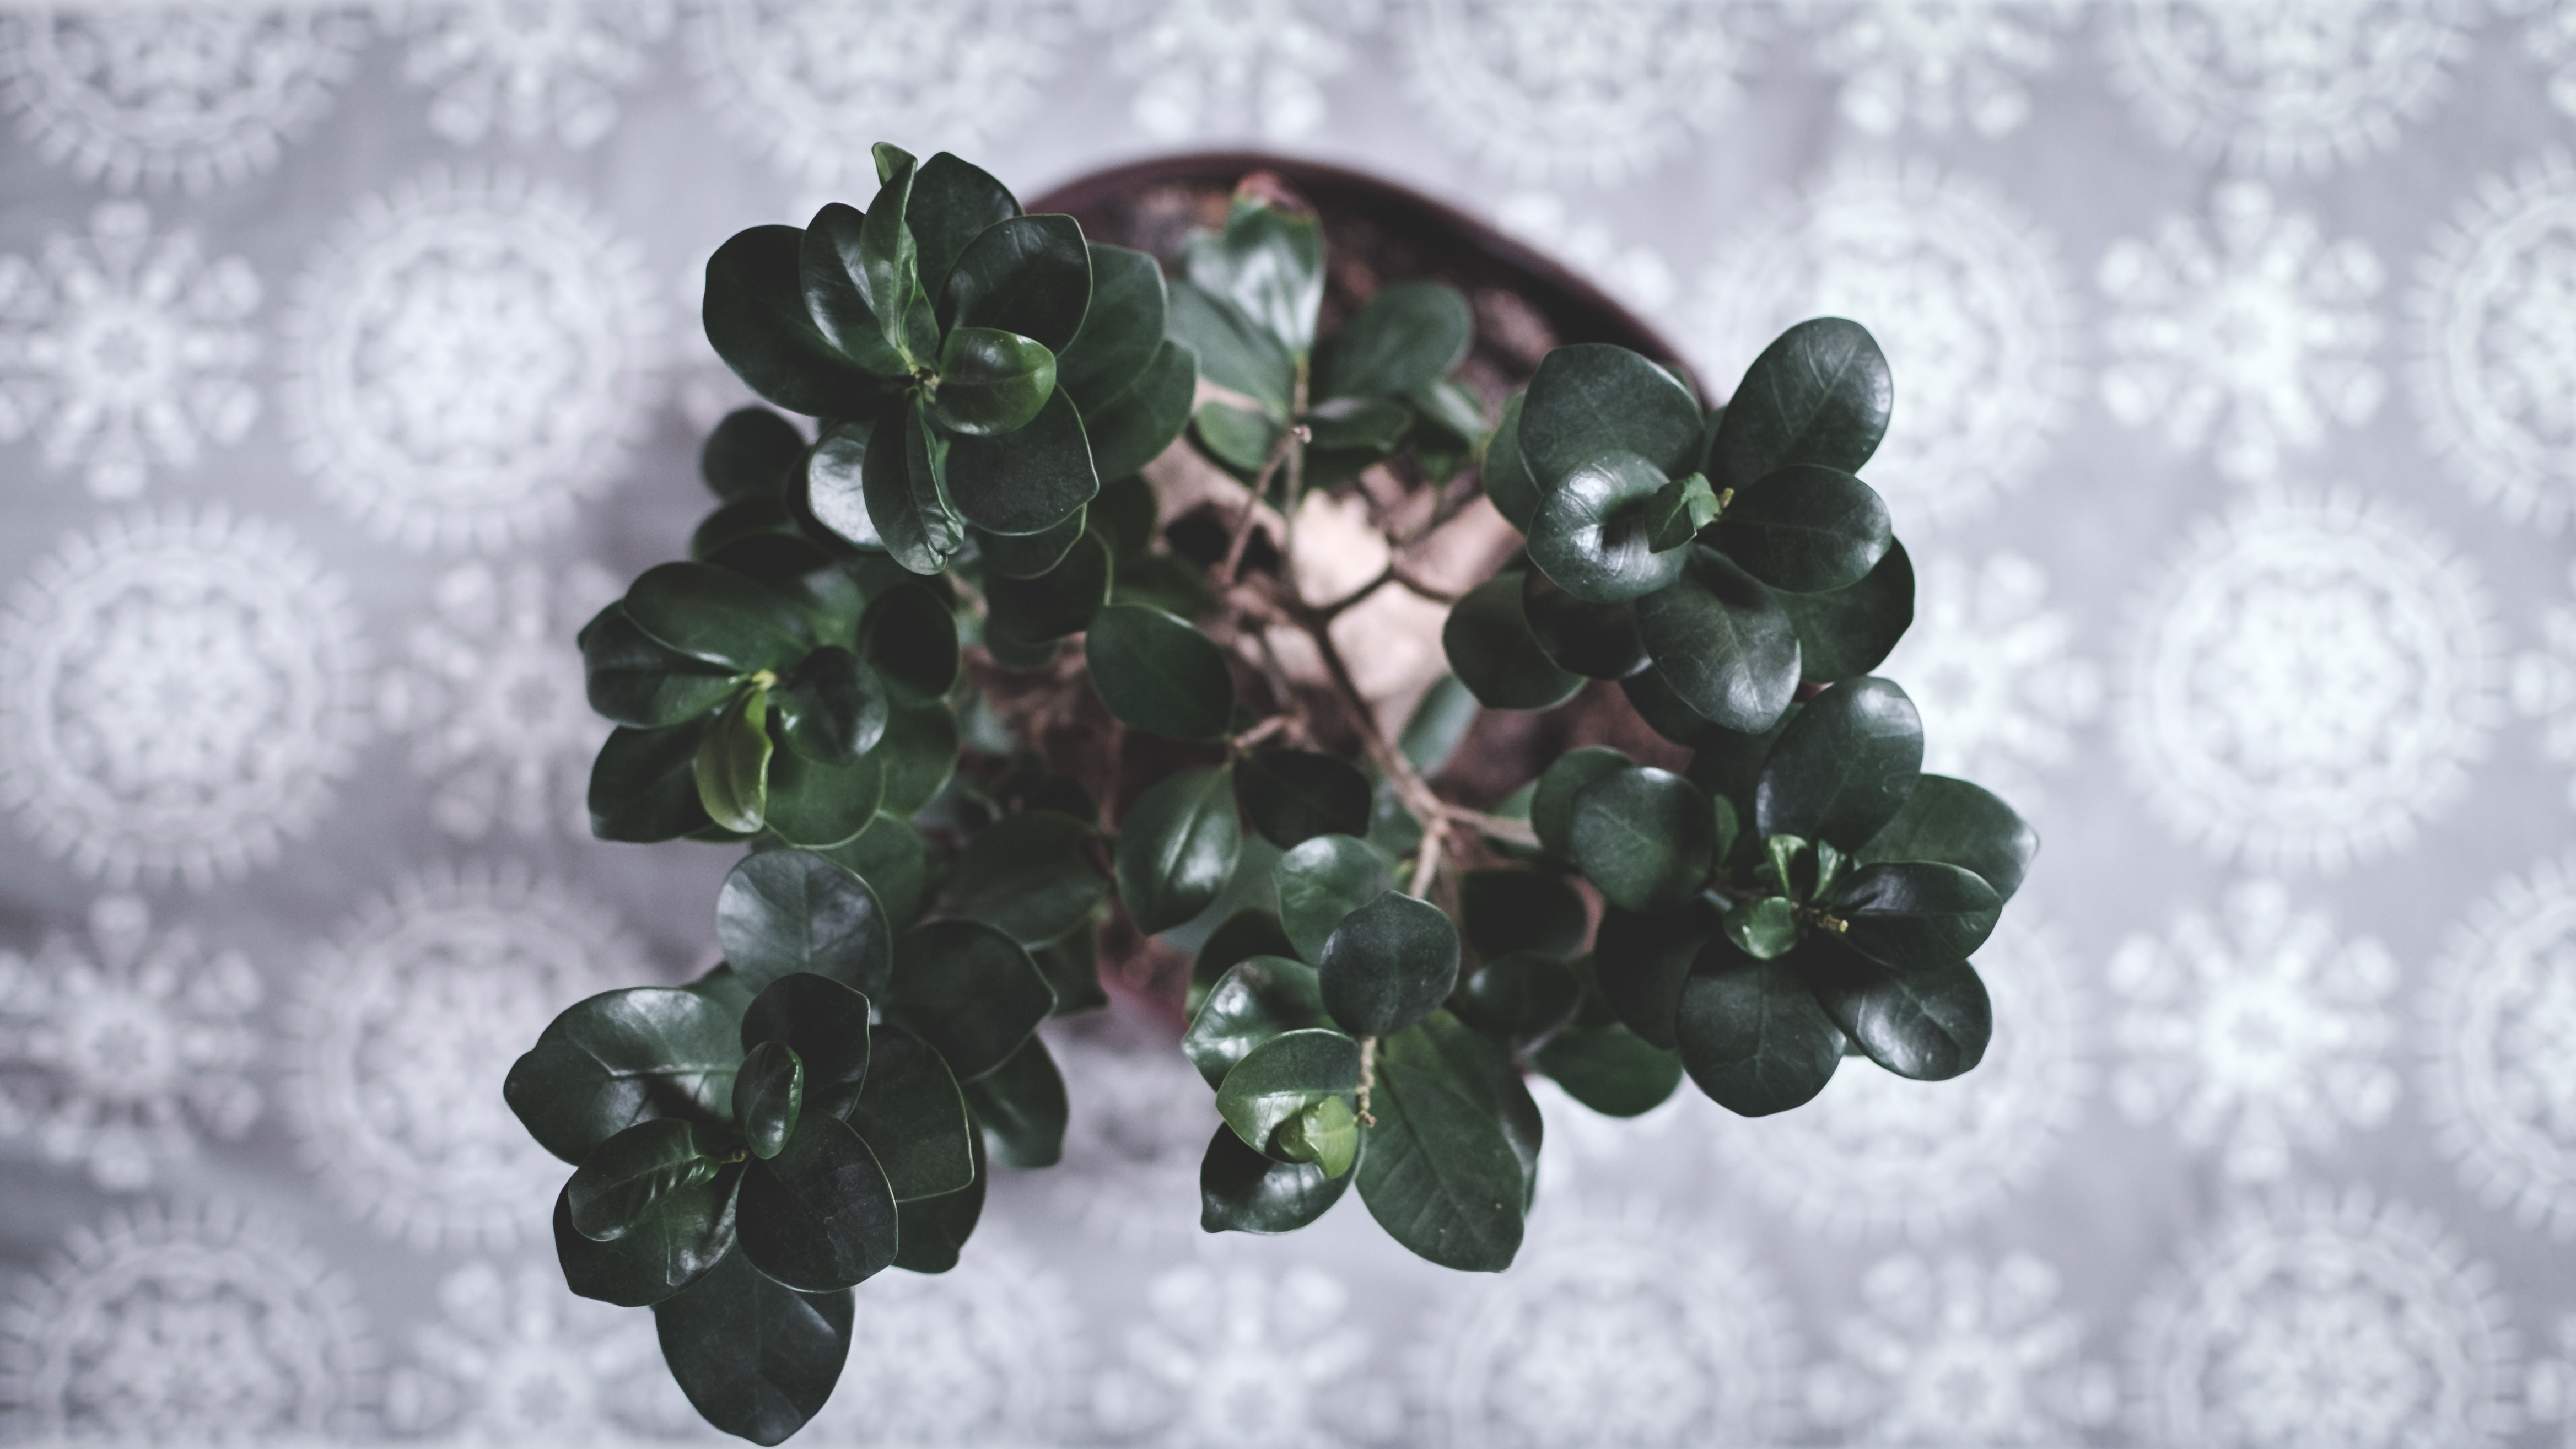 Small green houseplant on a decorative tablecloth